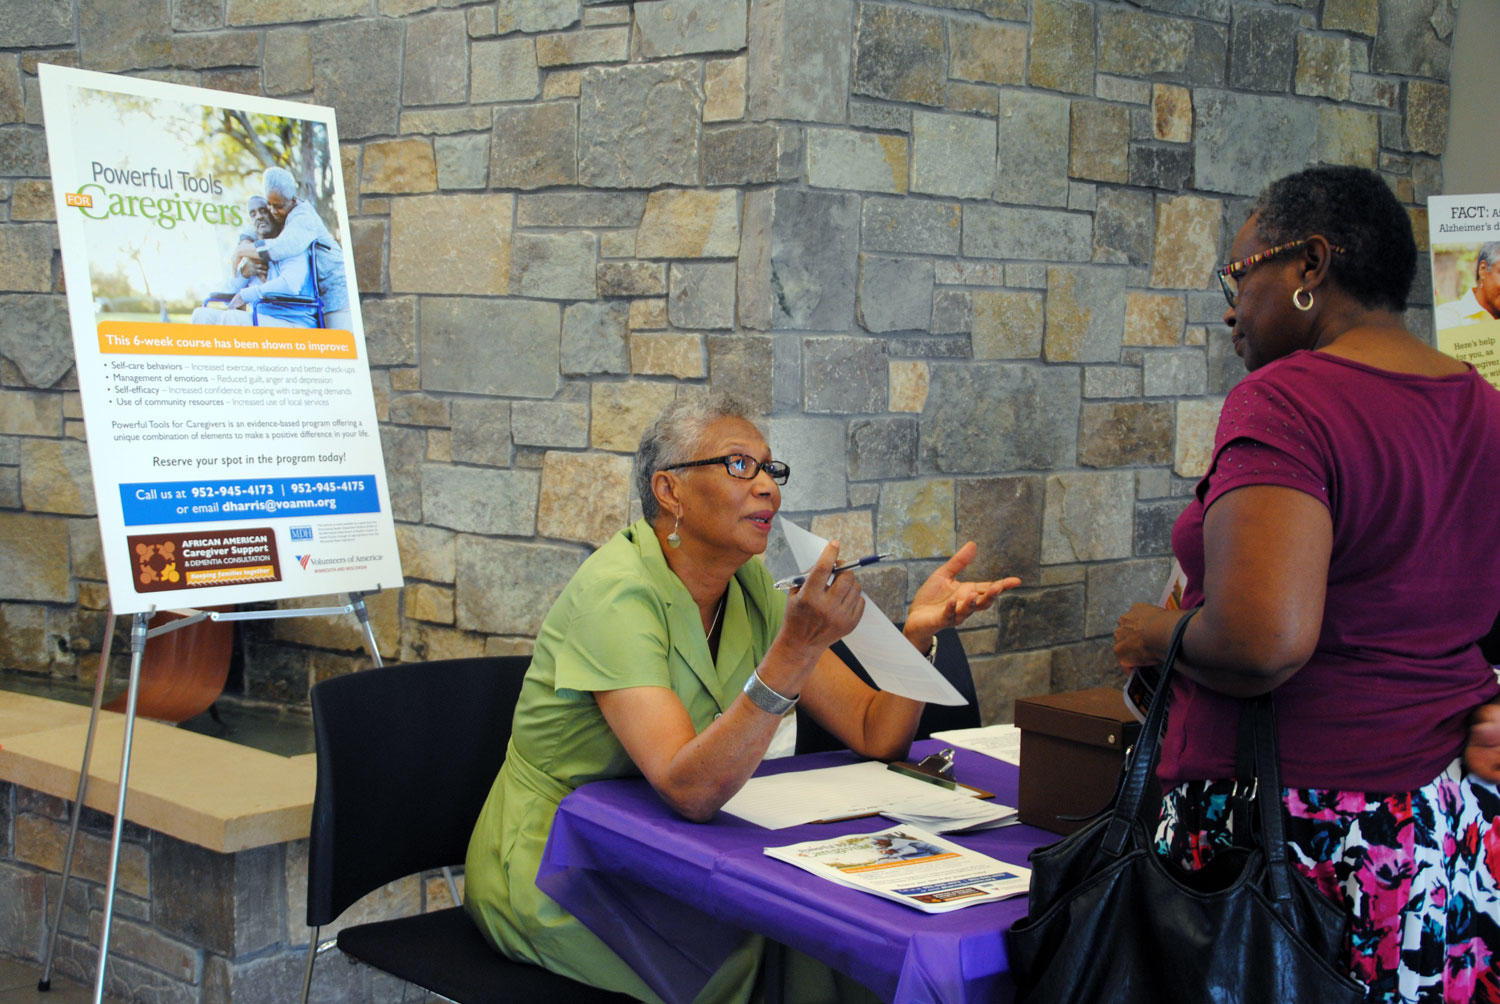 caregiver providing information at event